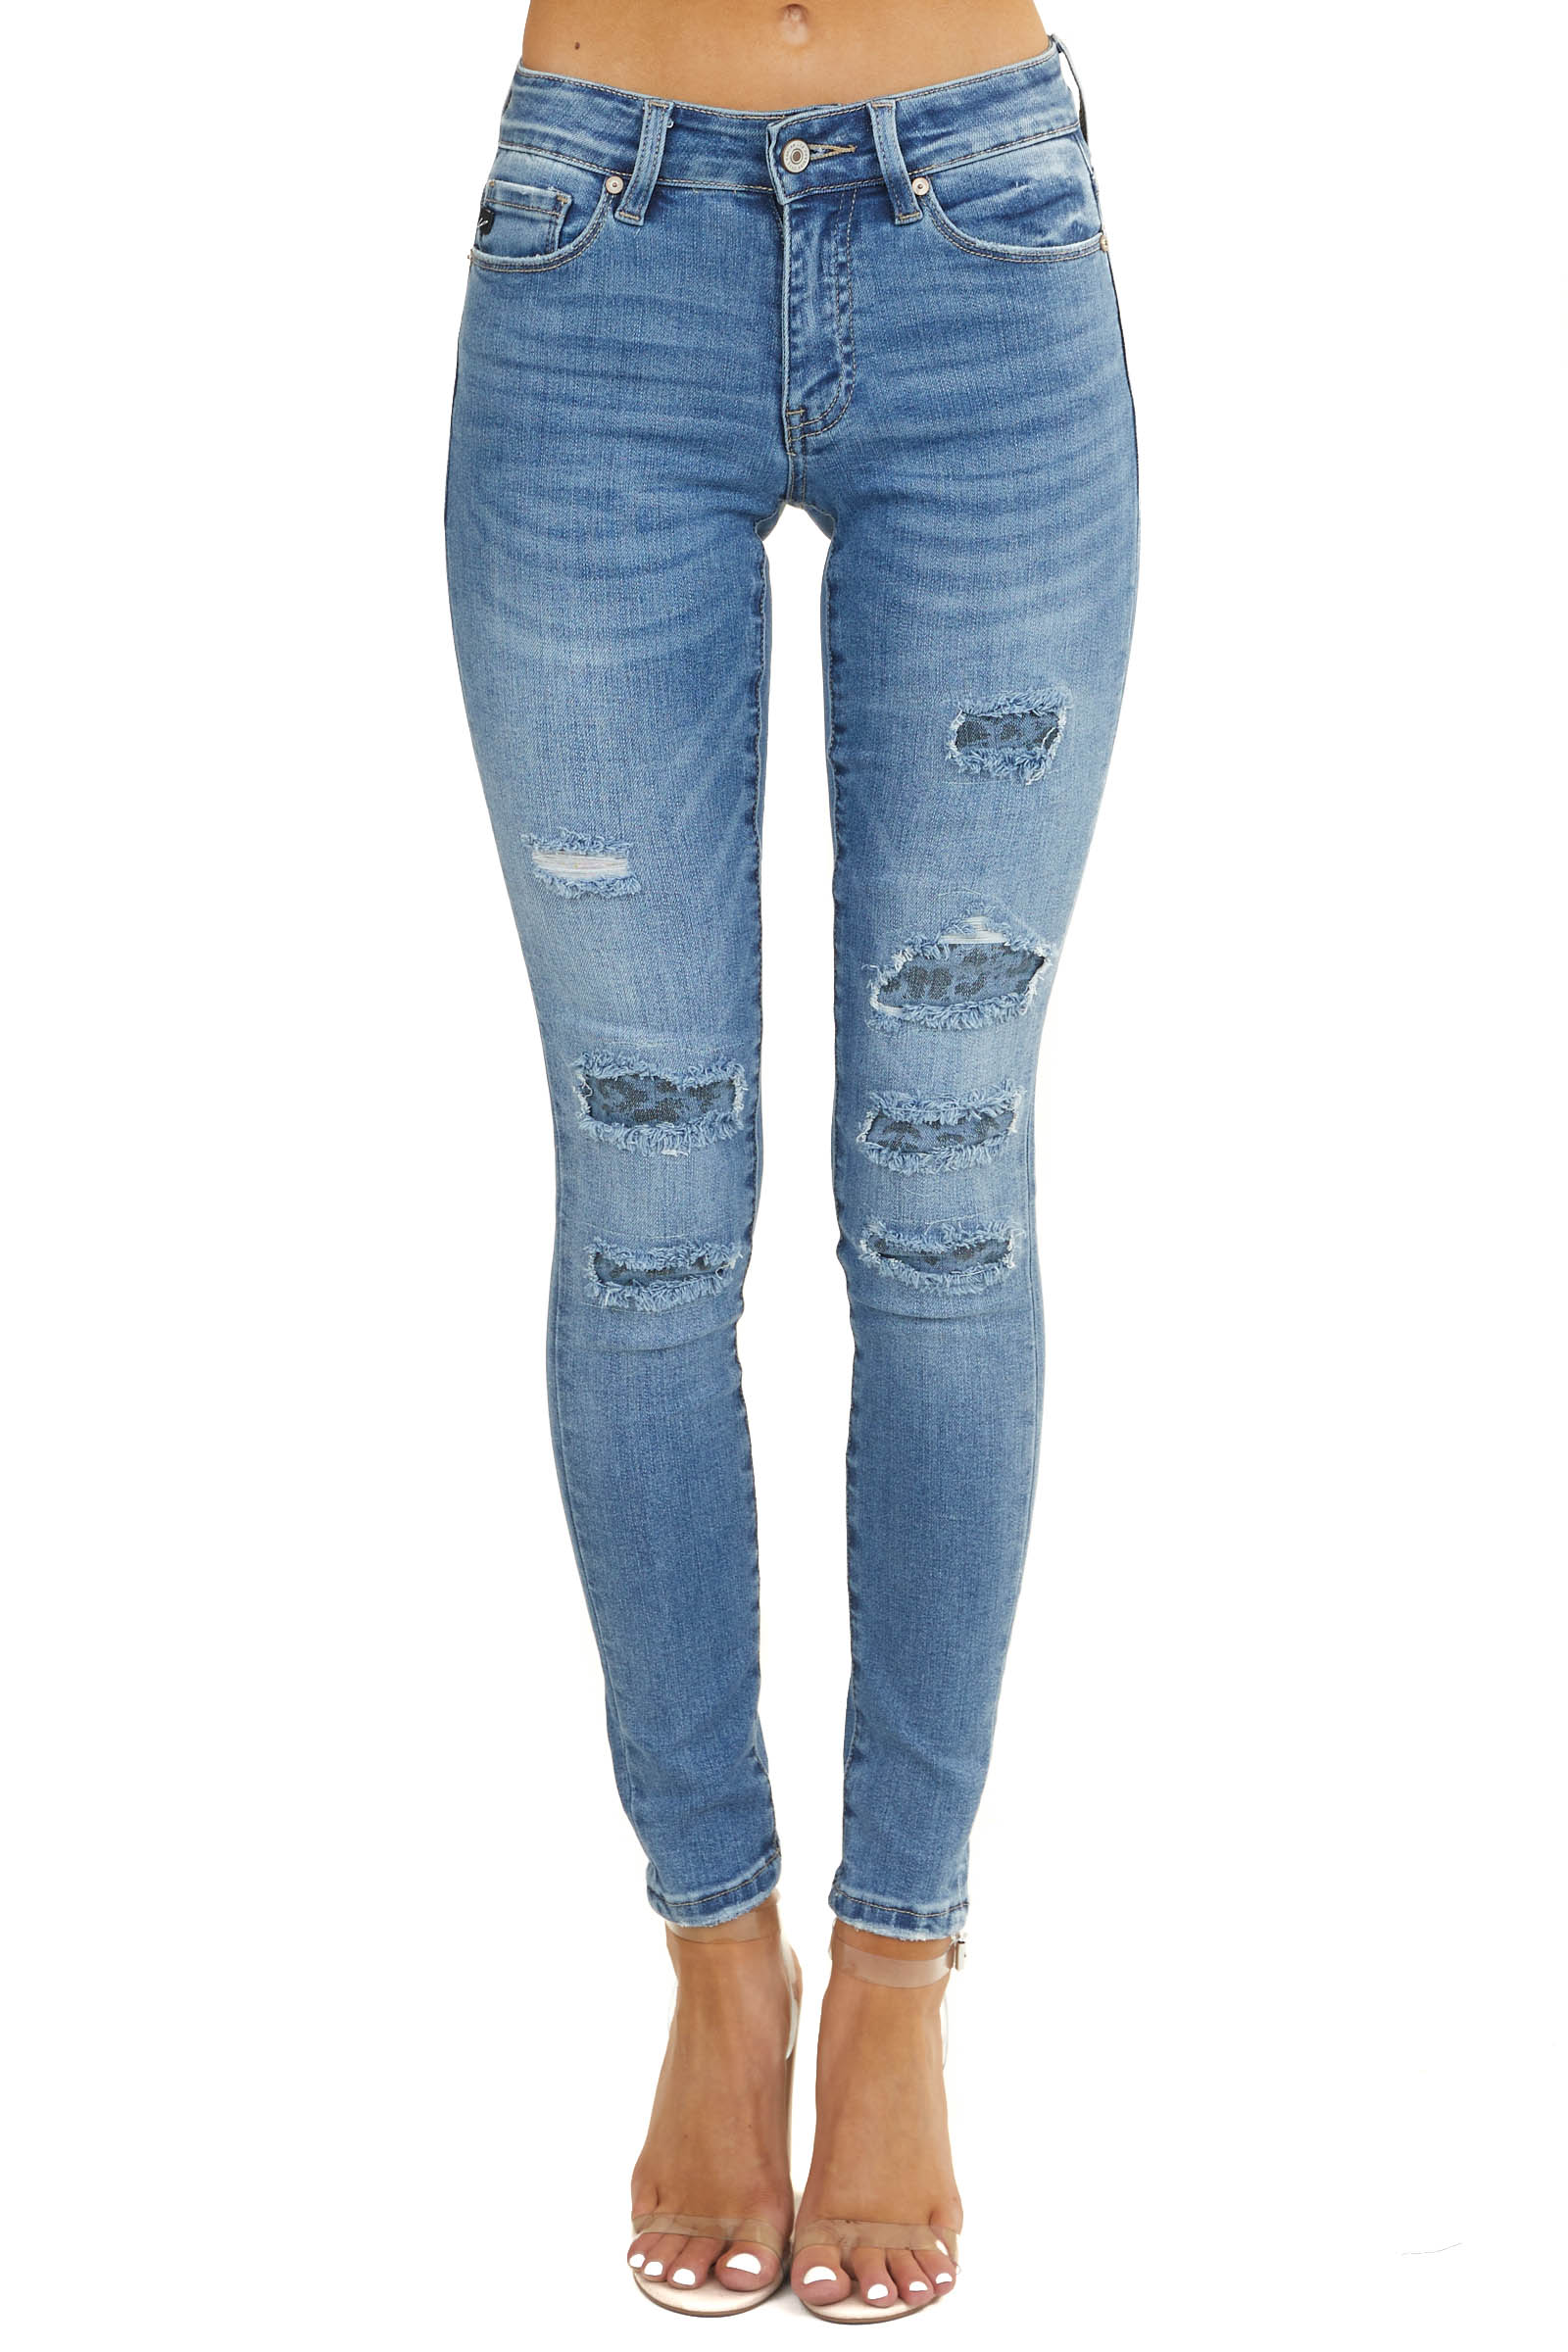 Medium Wash Mid Rise Skinny Jeans with Leopard Print Detail